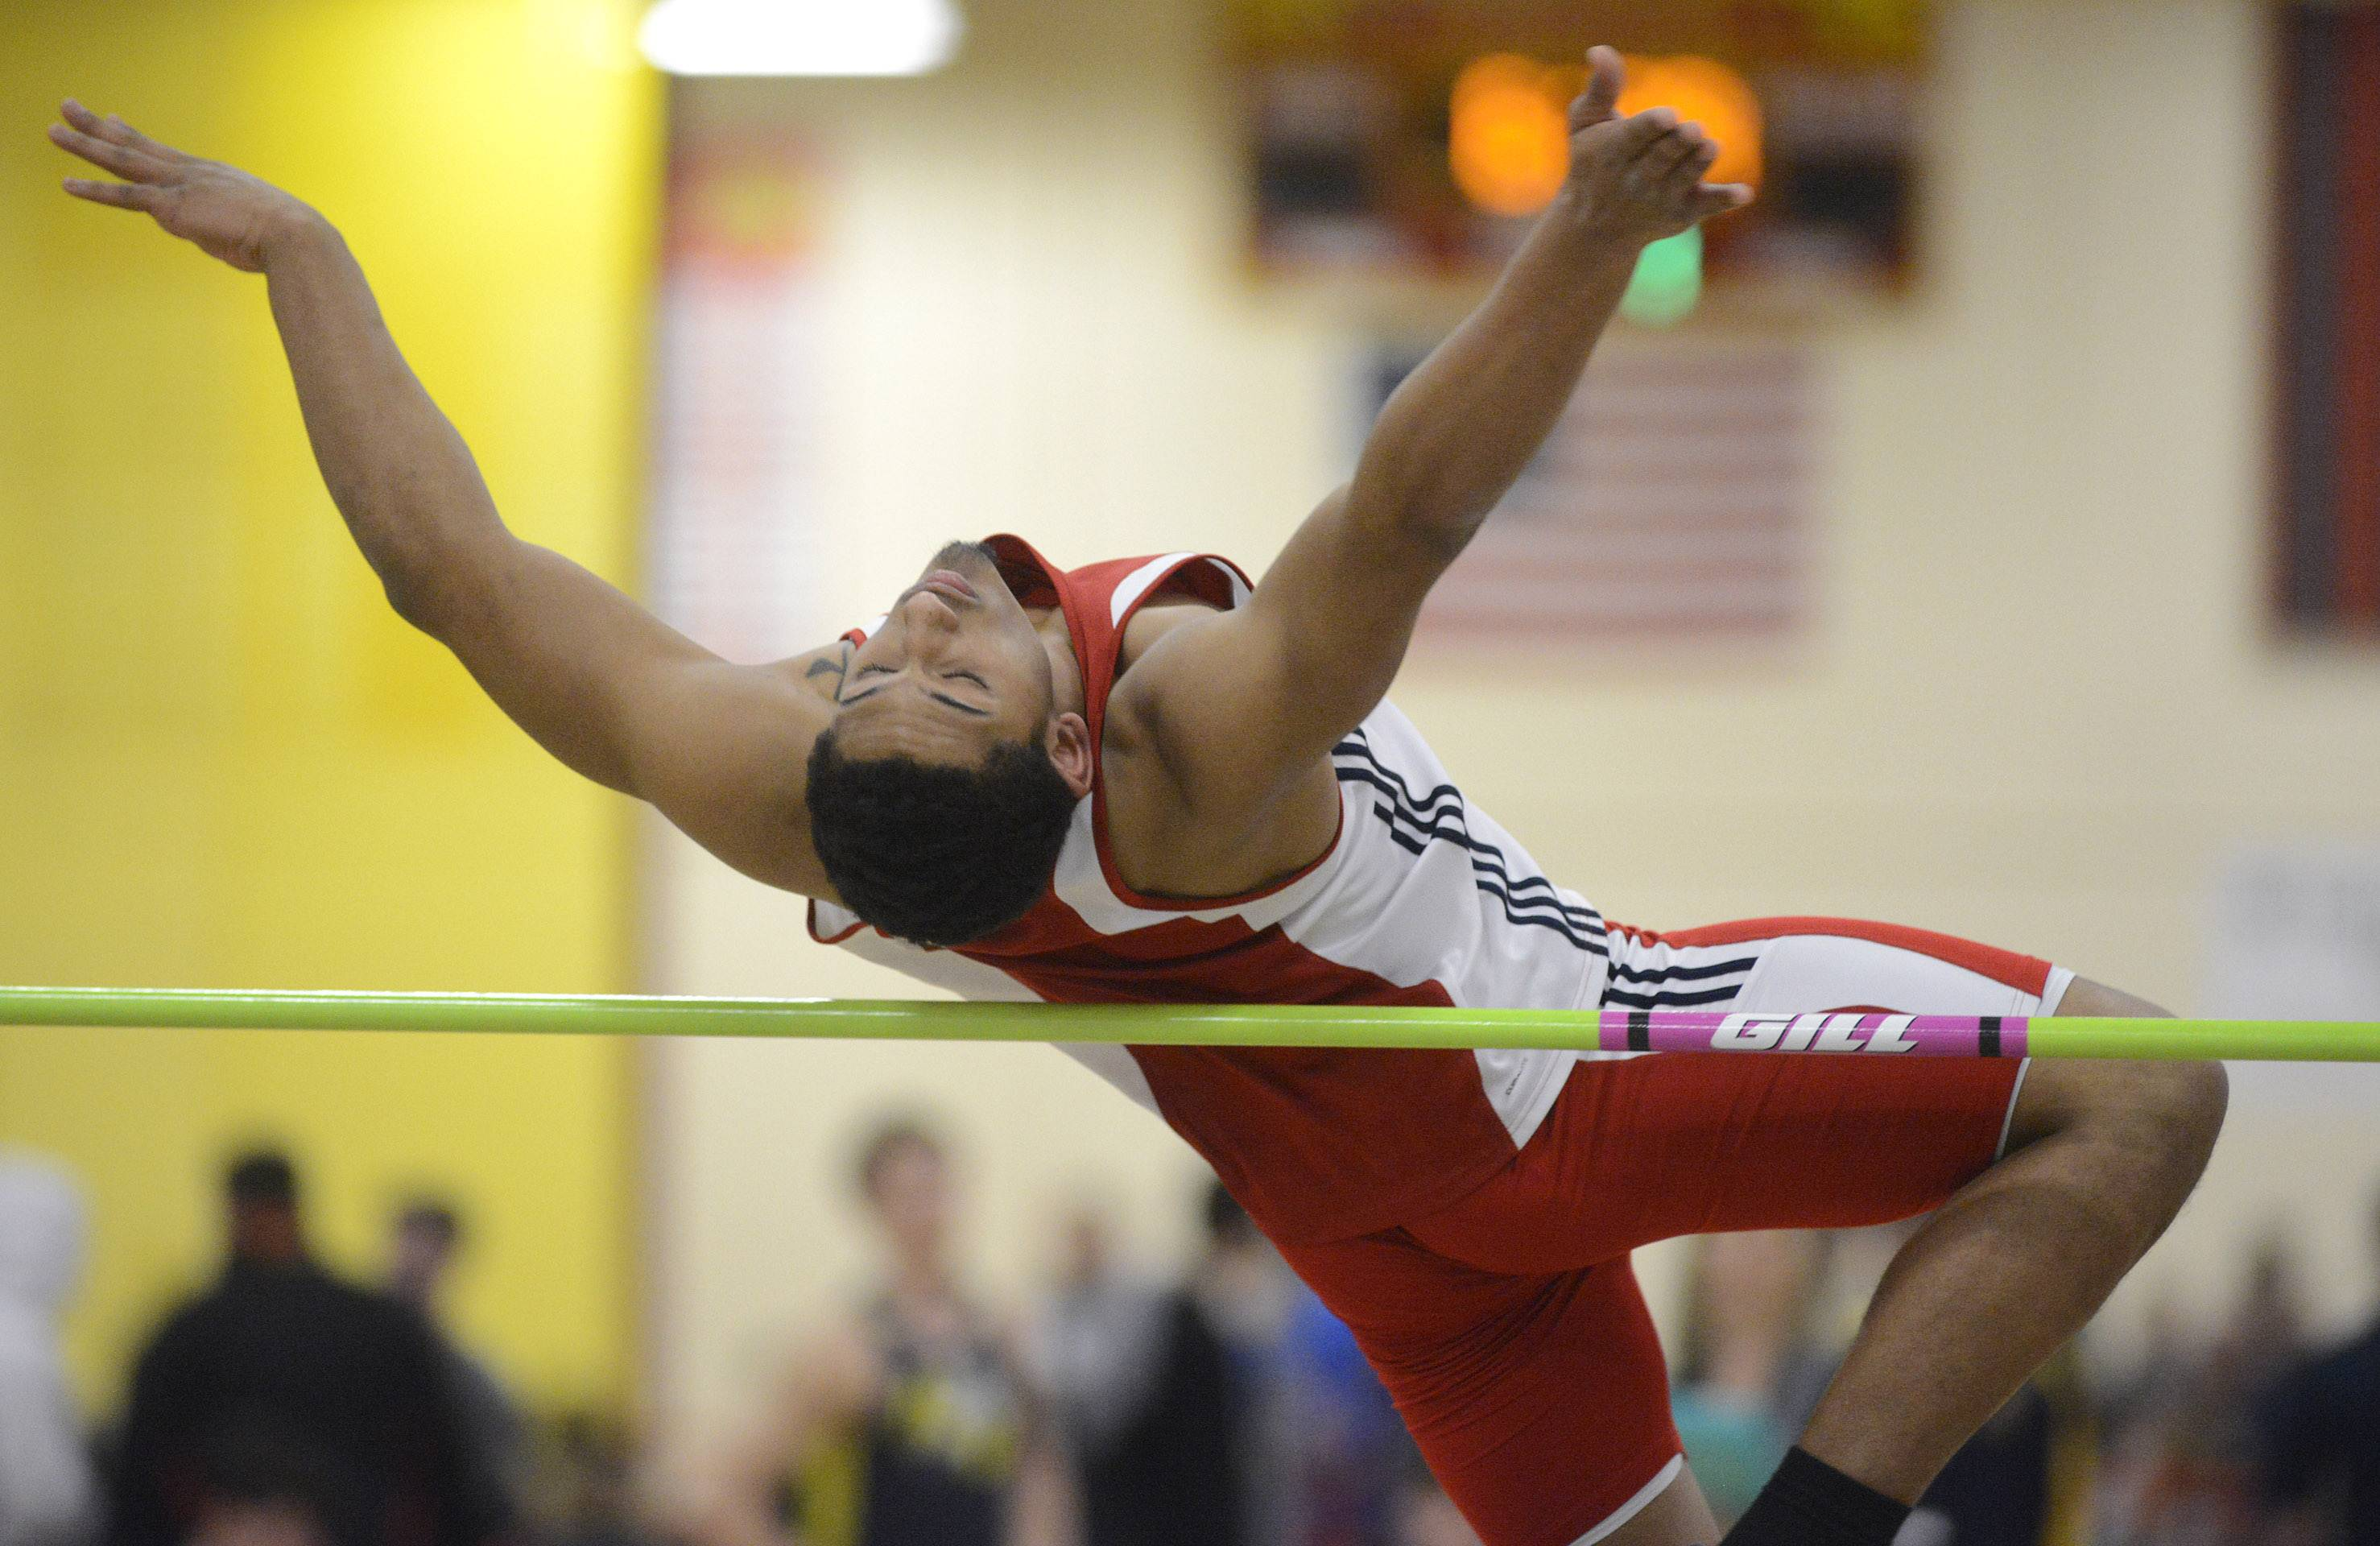 South Elgin's Dalton Garland in the high jump at the Upstate Eight Conference in Batavia on Friday.